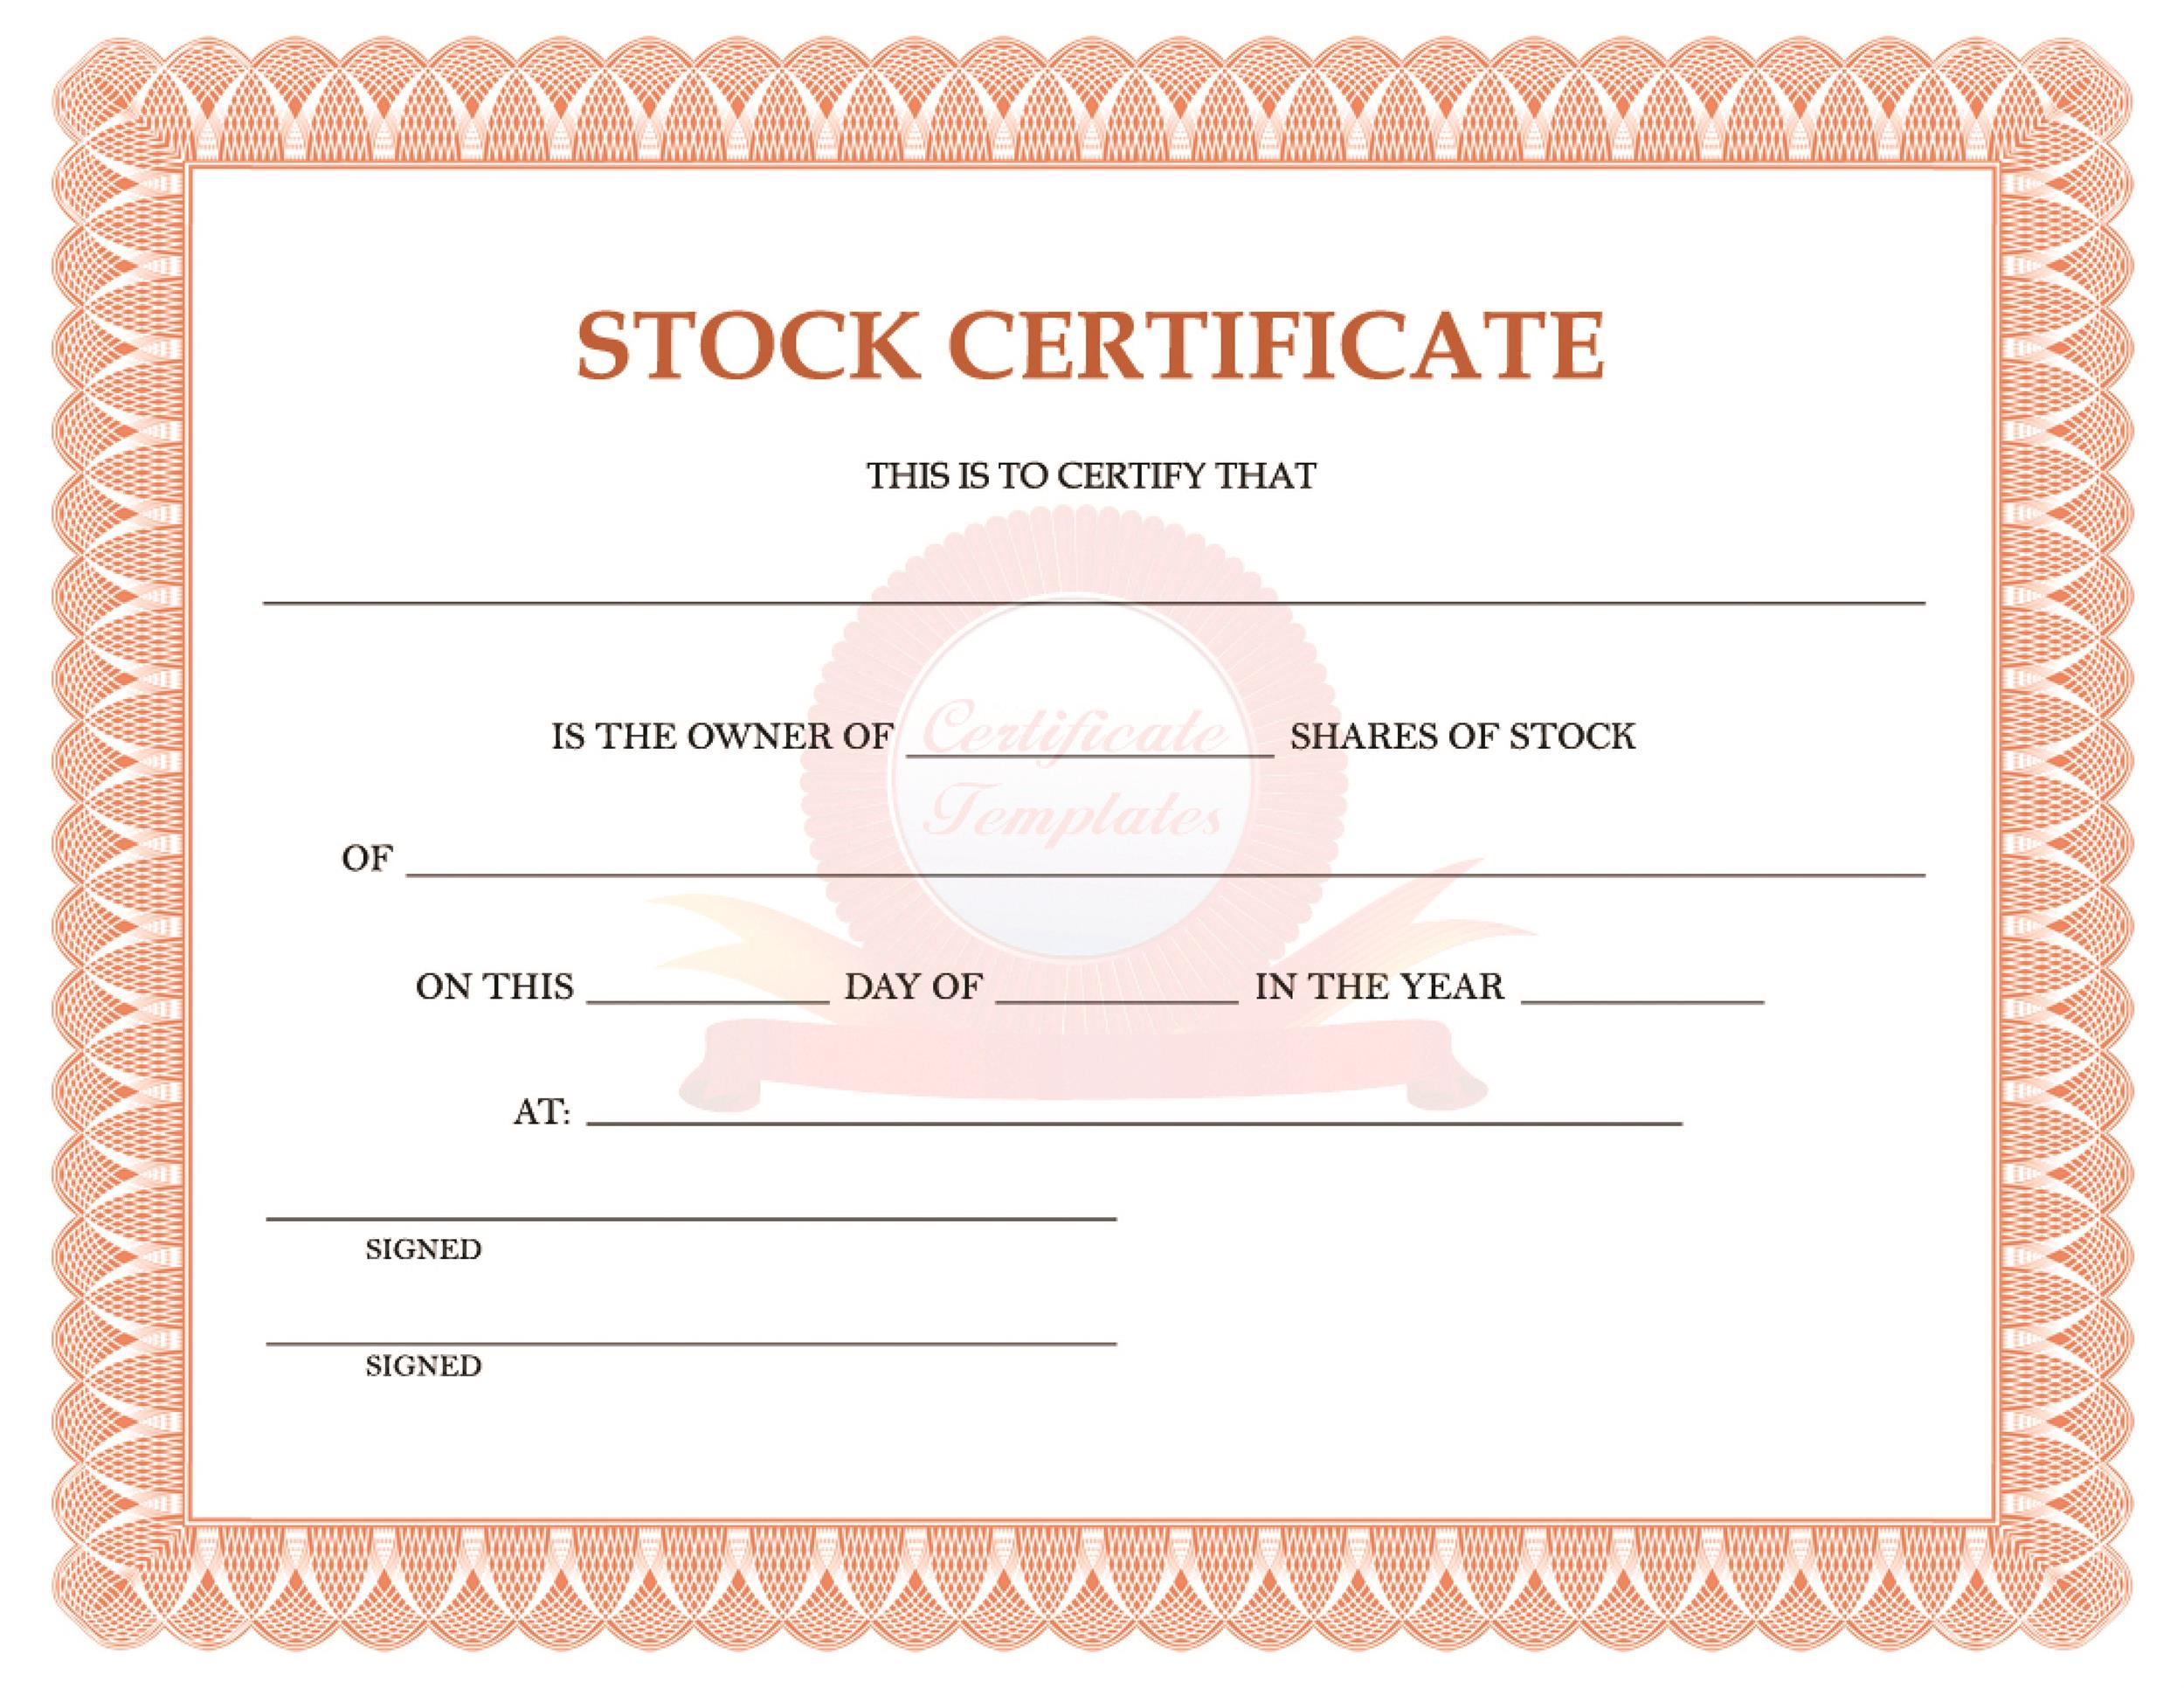 40 free stock certificate templates word pdf template lab printable stock certificate template 26 yelopaper